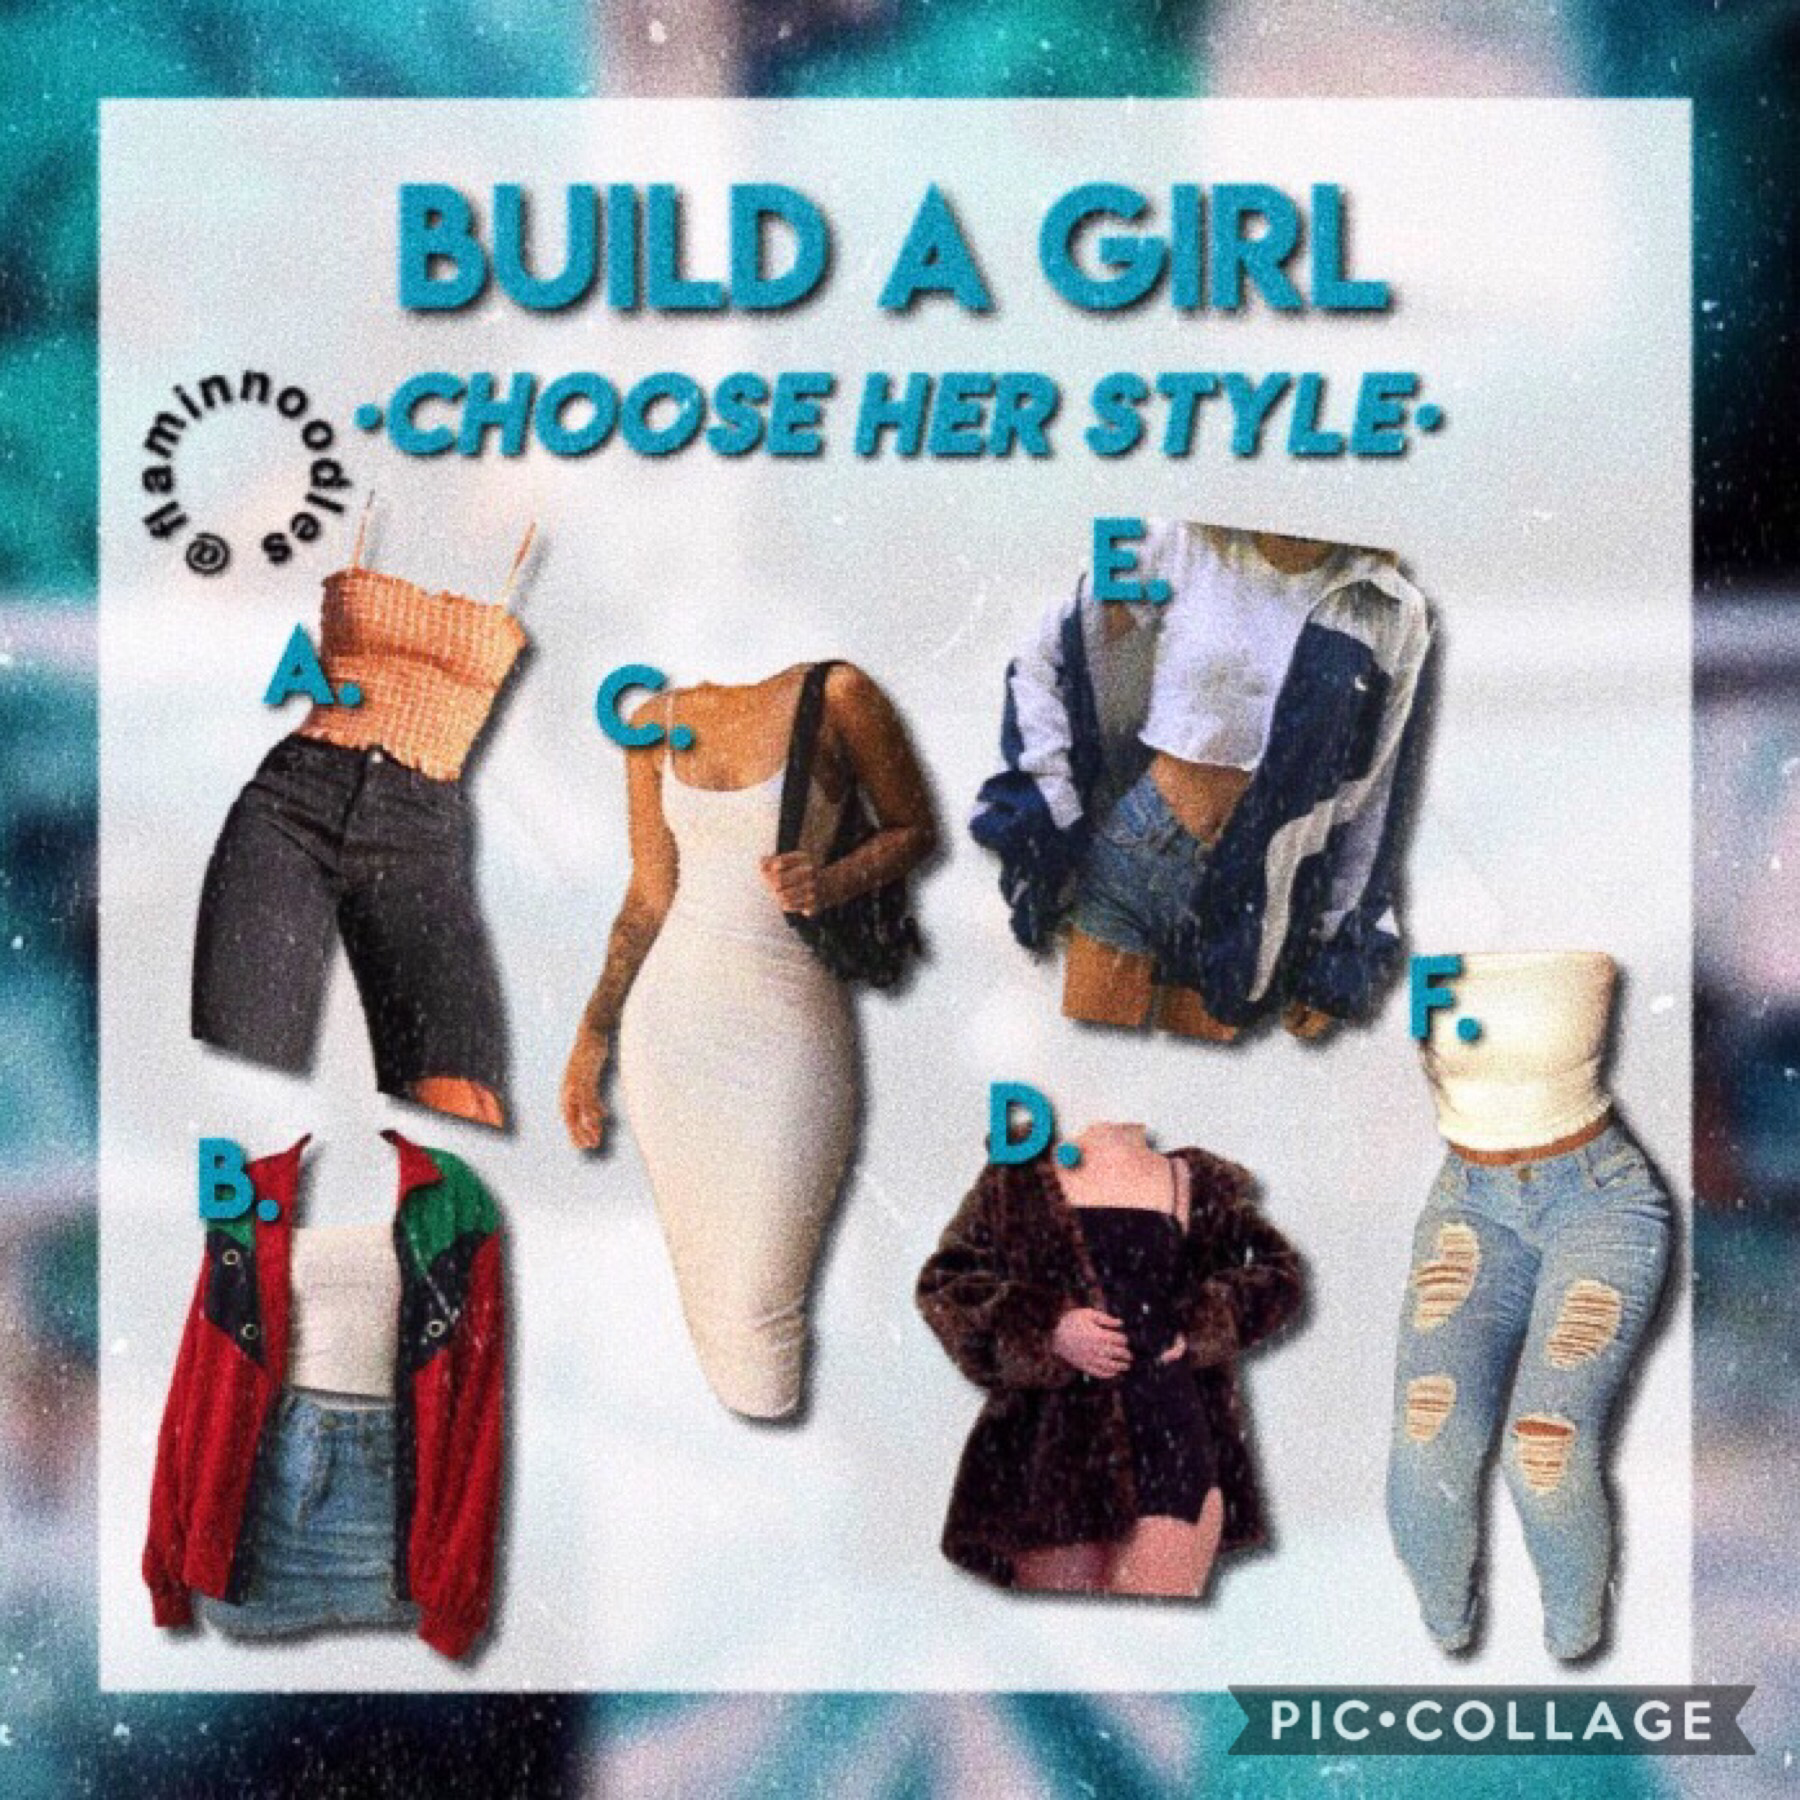 ✨ Tap ✨ Hey this is part 2 of Build A Girl I did part 1 a while ago! I know I'm posting later than I usually do but hey it's still Tuesday tho 😂 also I just got finished watching BrightBurn it was good! Qotd: which outfit would u choose?